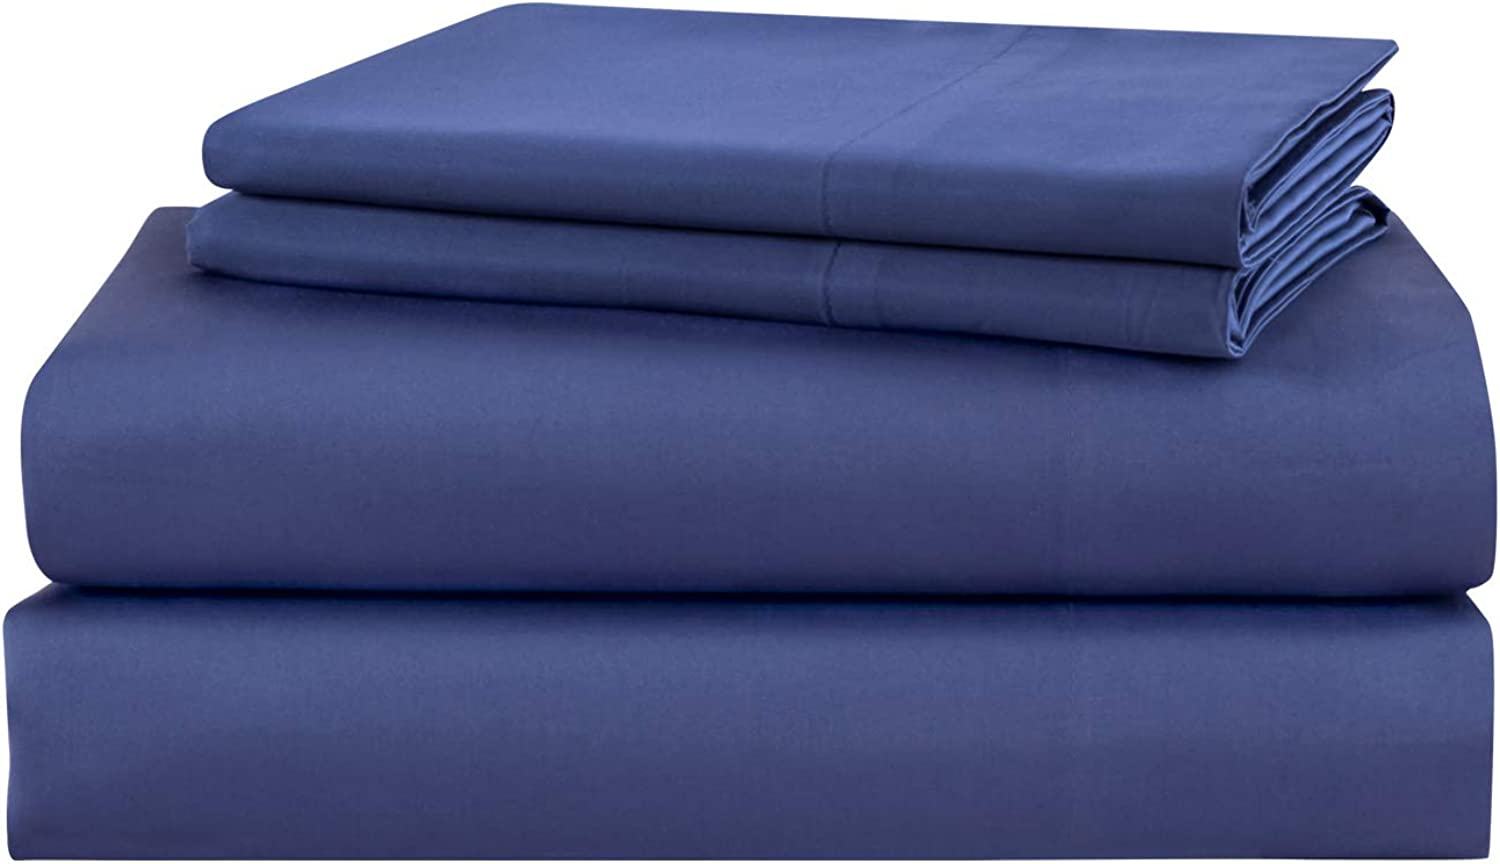 PHF 800 Thread Count Cotton Rich Bed Sheet Set Satin Weave Deep Pocket Cozy Durable Wrinkle Resistant 4 Pieces King Size Royal bluee